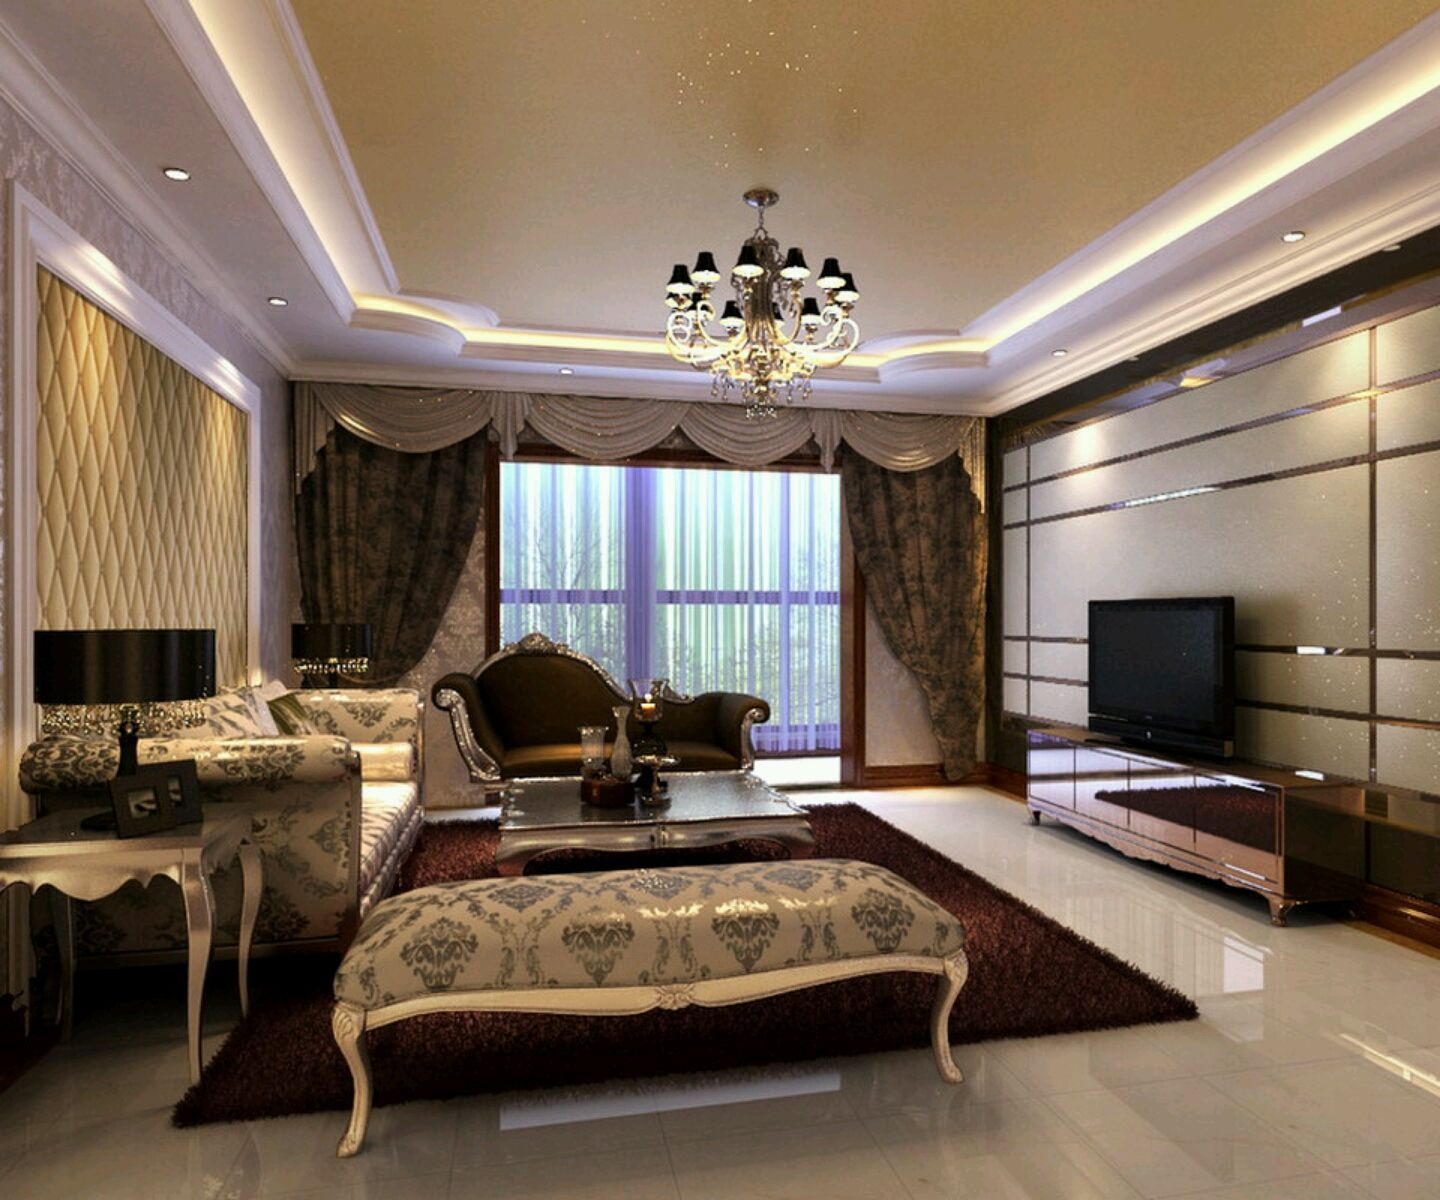 Interior home decorations luxury interior decorating ideas - Luxury Home Interior Design Gzuqbv